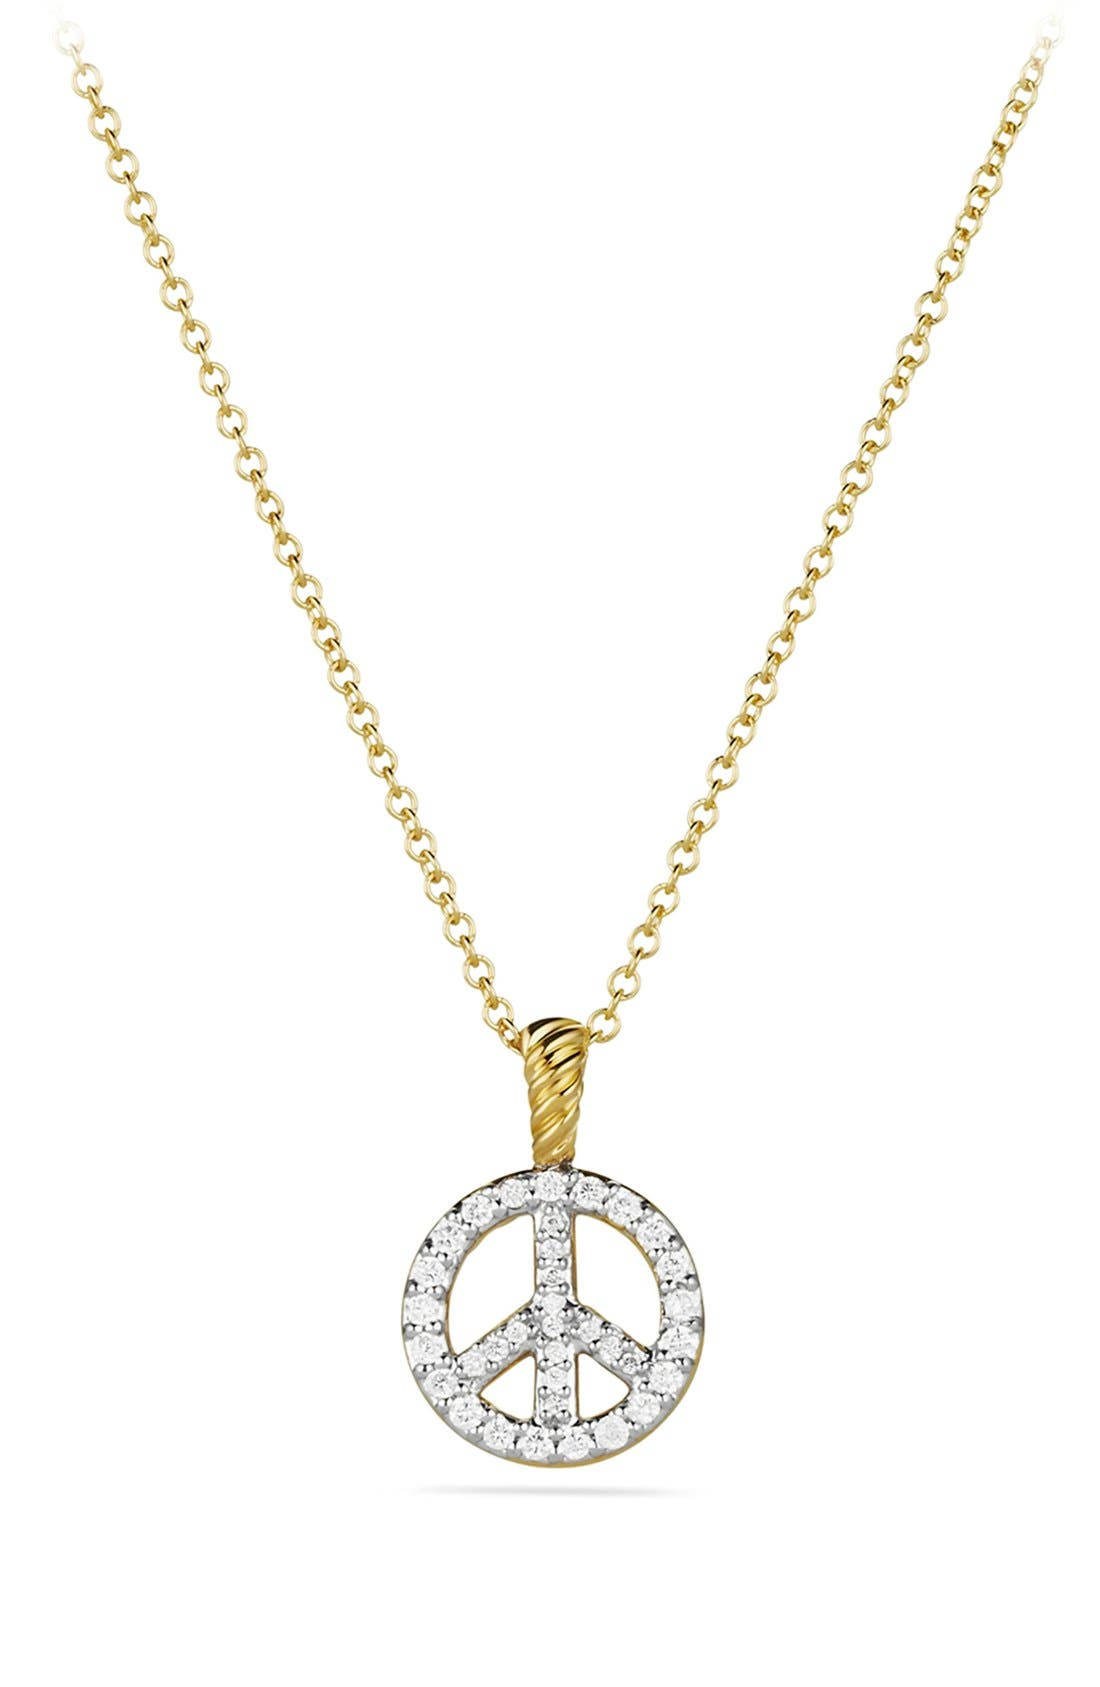 Main Image - David Yurman 'Cable Collectibles' Peace Sign Pendant with Diamonds on Chain